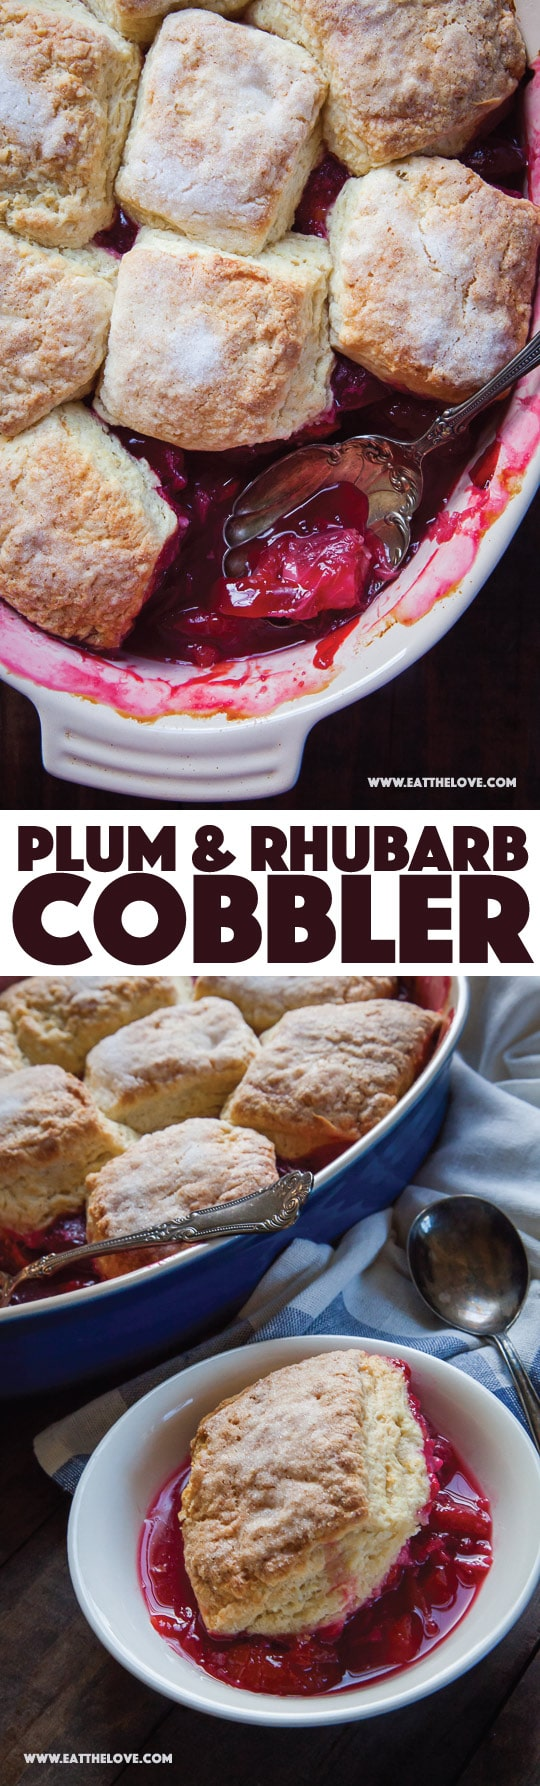 Plum and Rhubarb Cobbler, with step-by-step photos and instructions. Photo and recipe by Irvin Lin of Eat the Love.